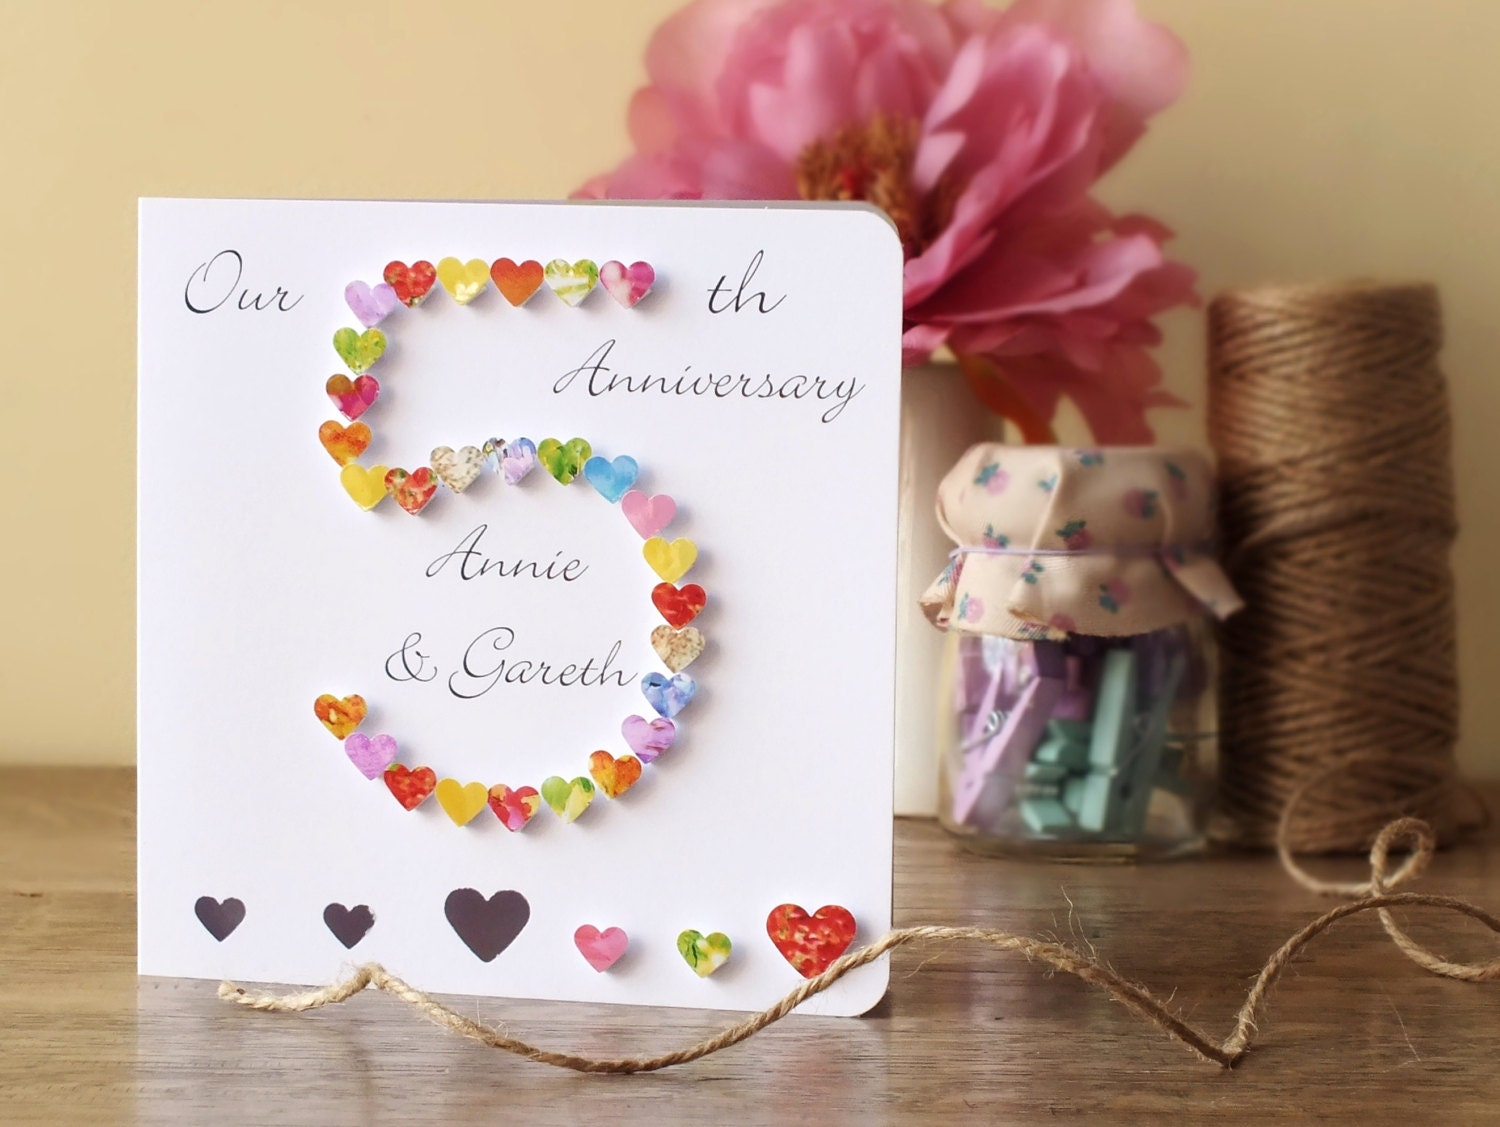 5th wedding anniversary card personalised 5th anniversary for Ideas for wedding anniversary gifts for husband